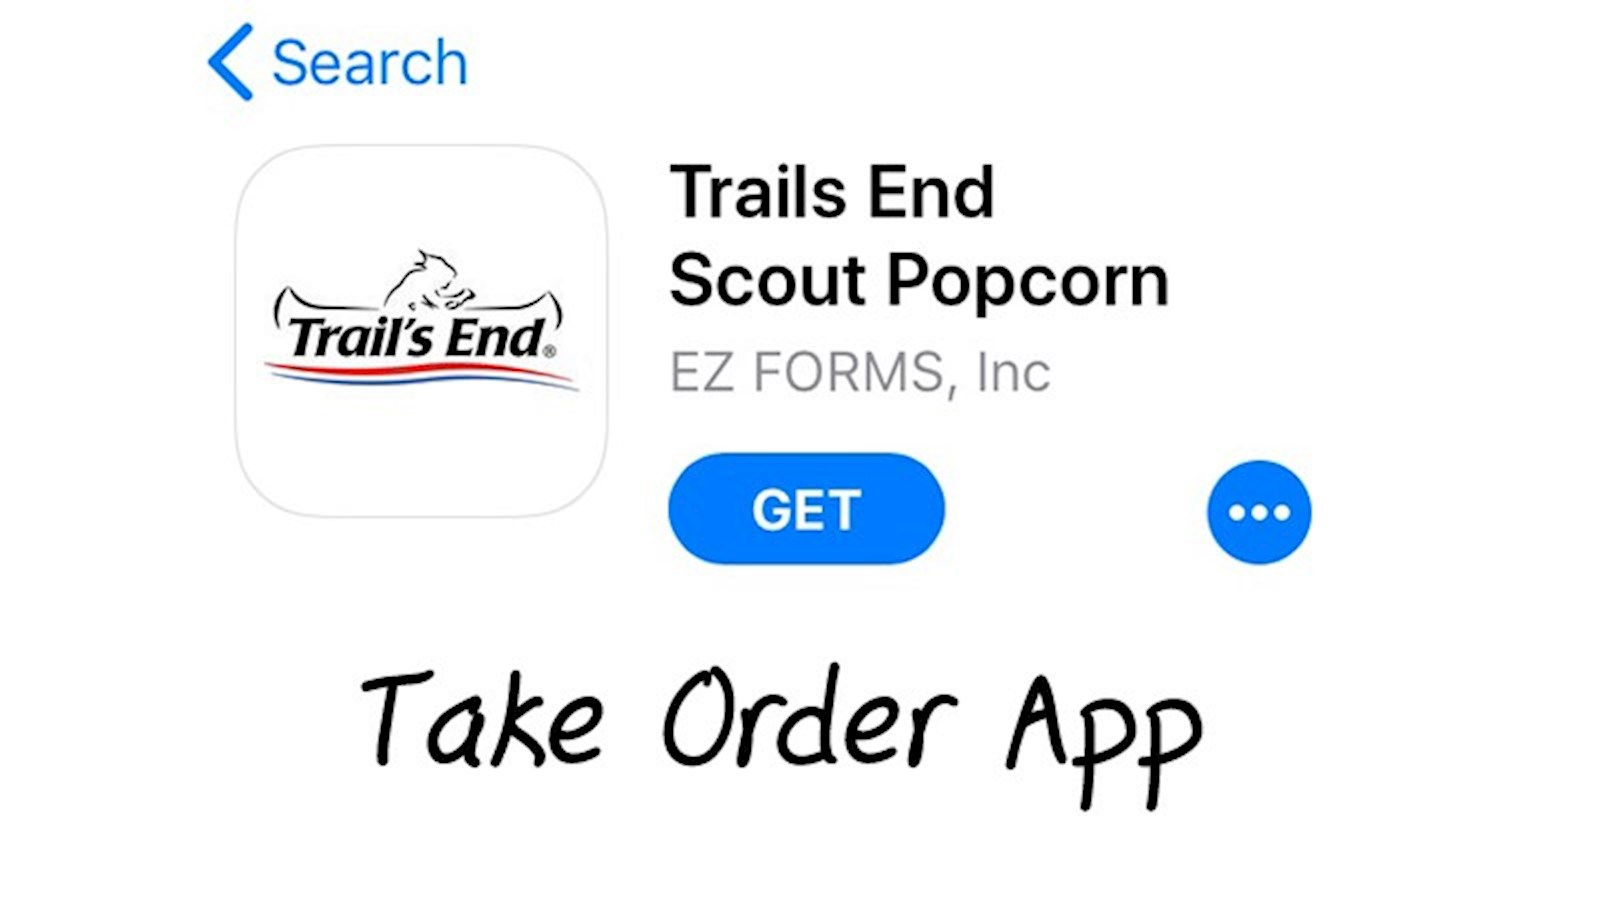 Introducing the Trail's End Take Order Digital App